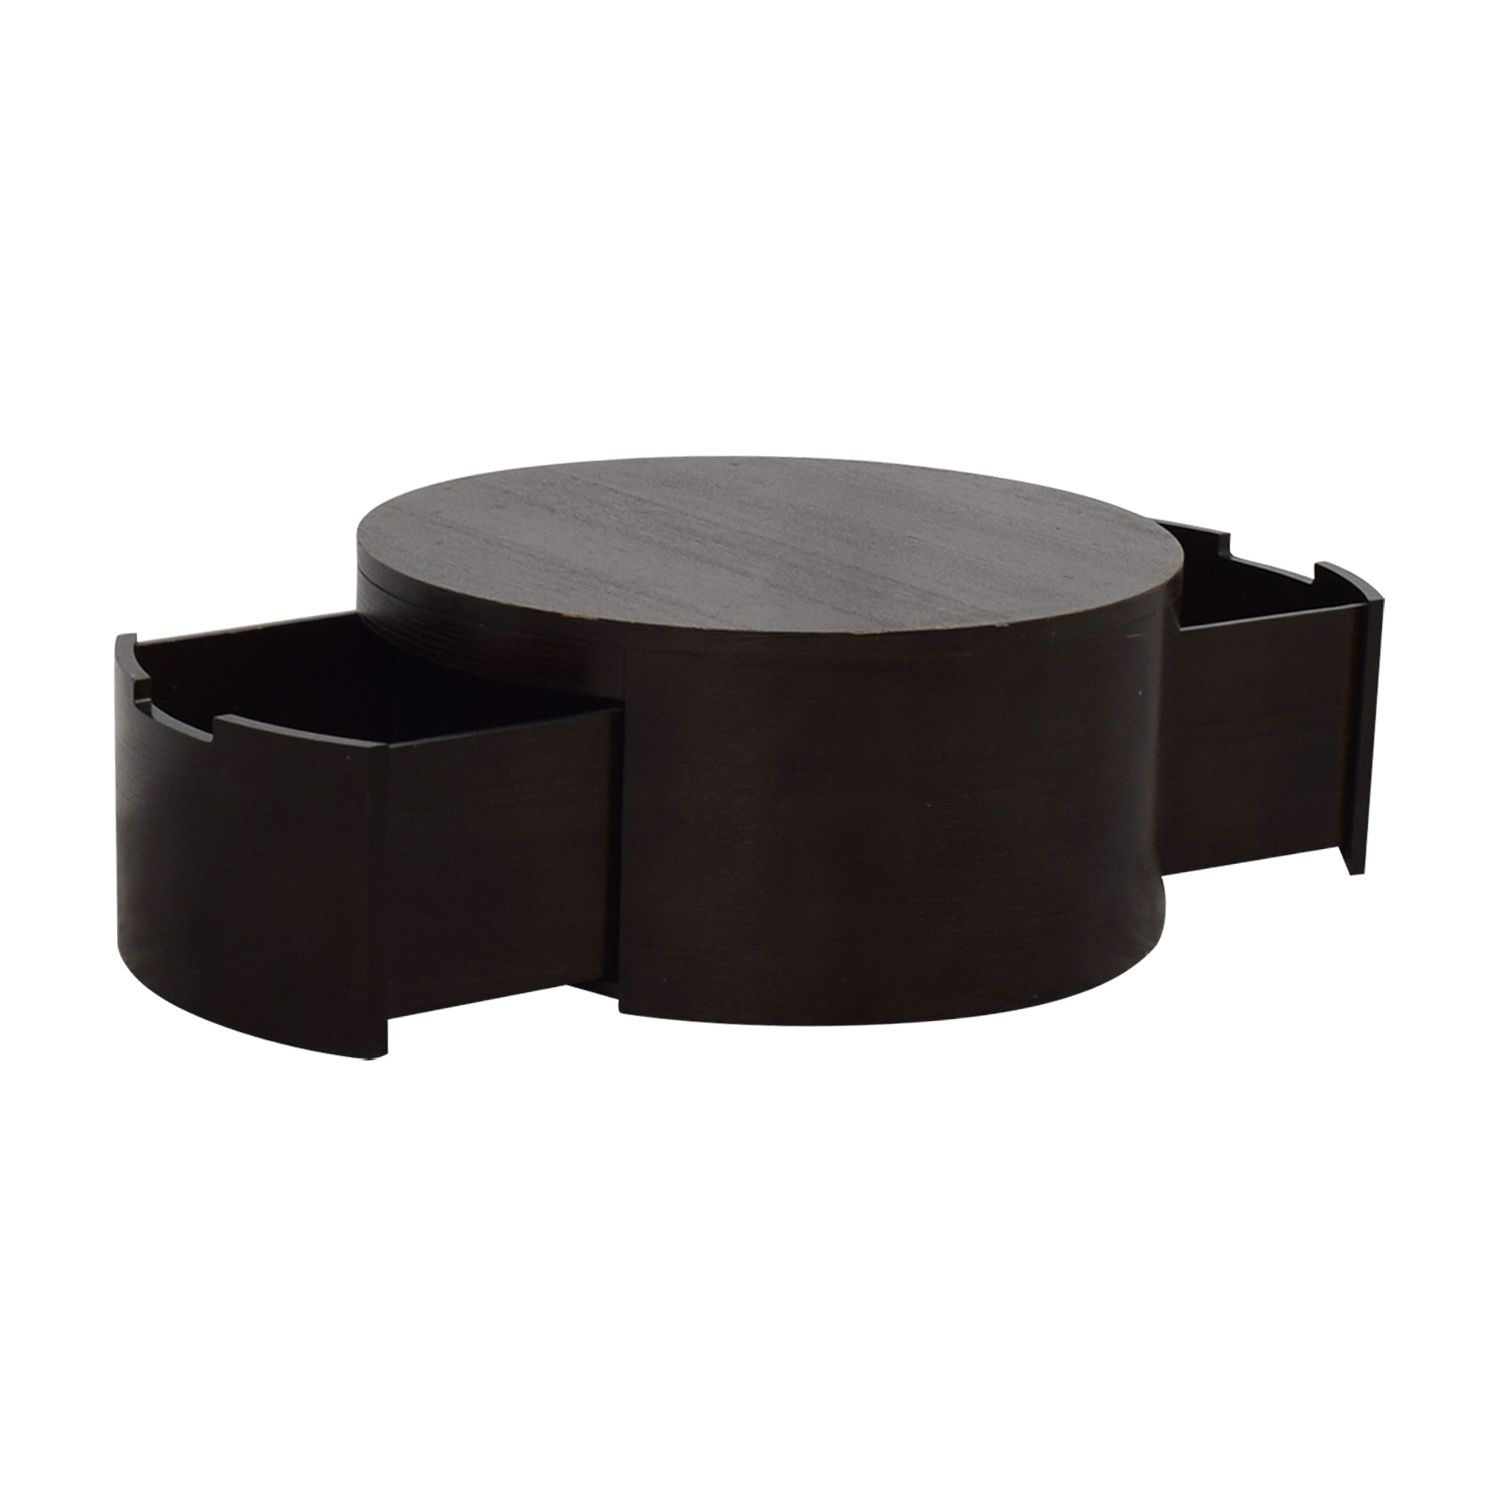 79 Off Land Of Nod The Land Of Nod Round Coffee Table With Two Drawer Storage Storage Round Coffee Table Coffee Table Storage Drawers [ 1500 x 1500 Pixel ]